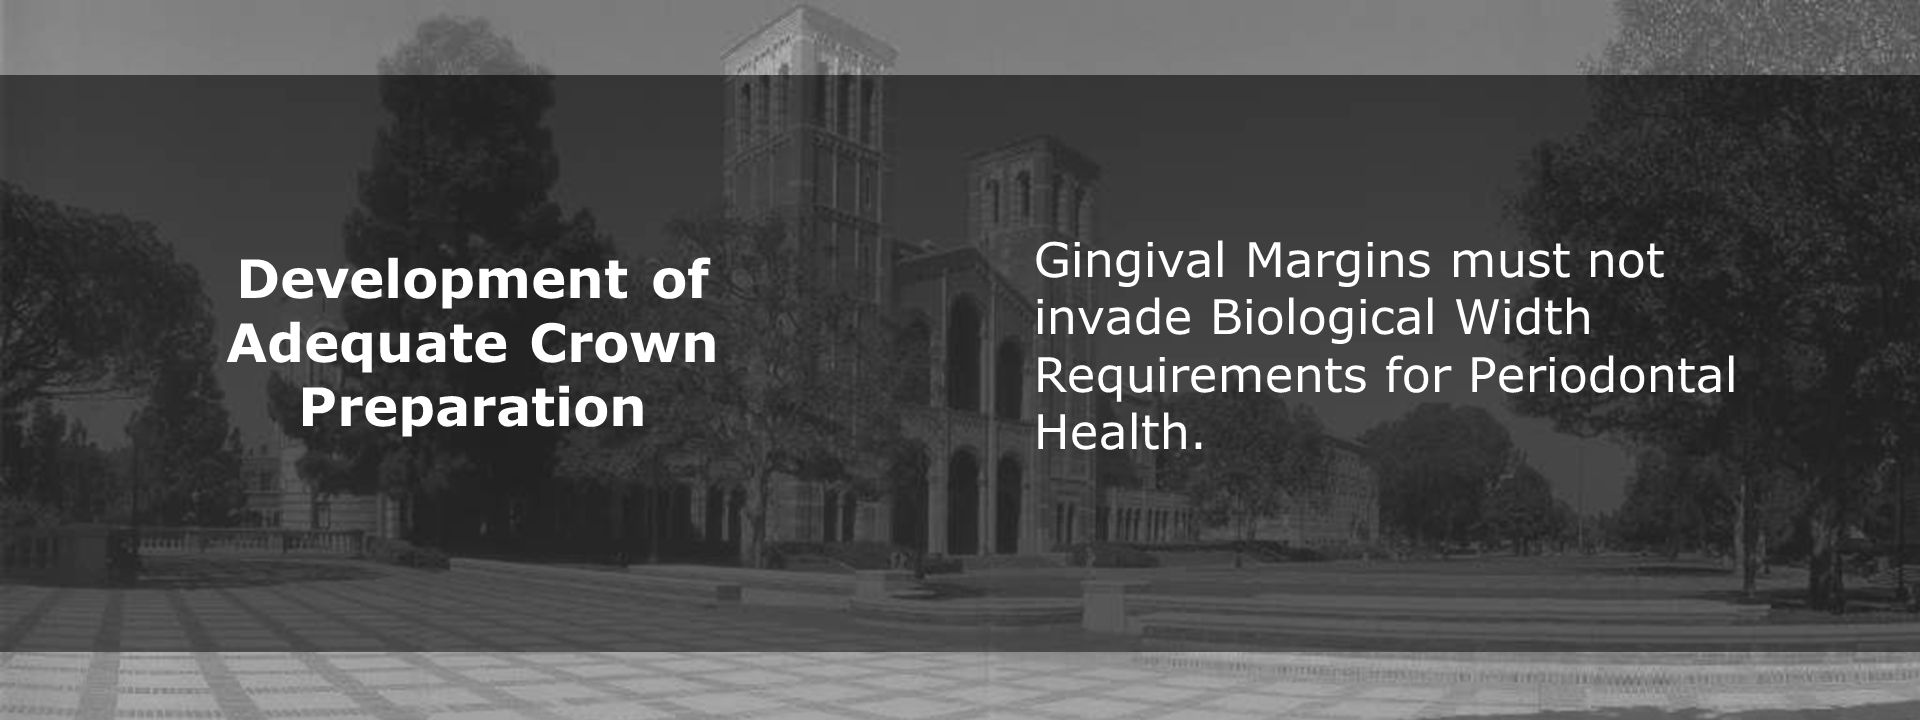 Gingival Margins must not invade Biological Width Requirements for Periodontal Health. Development of Adequate Crown Preparation